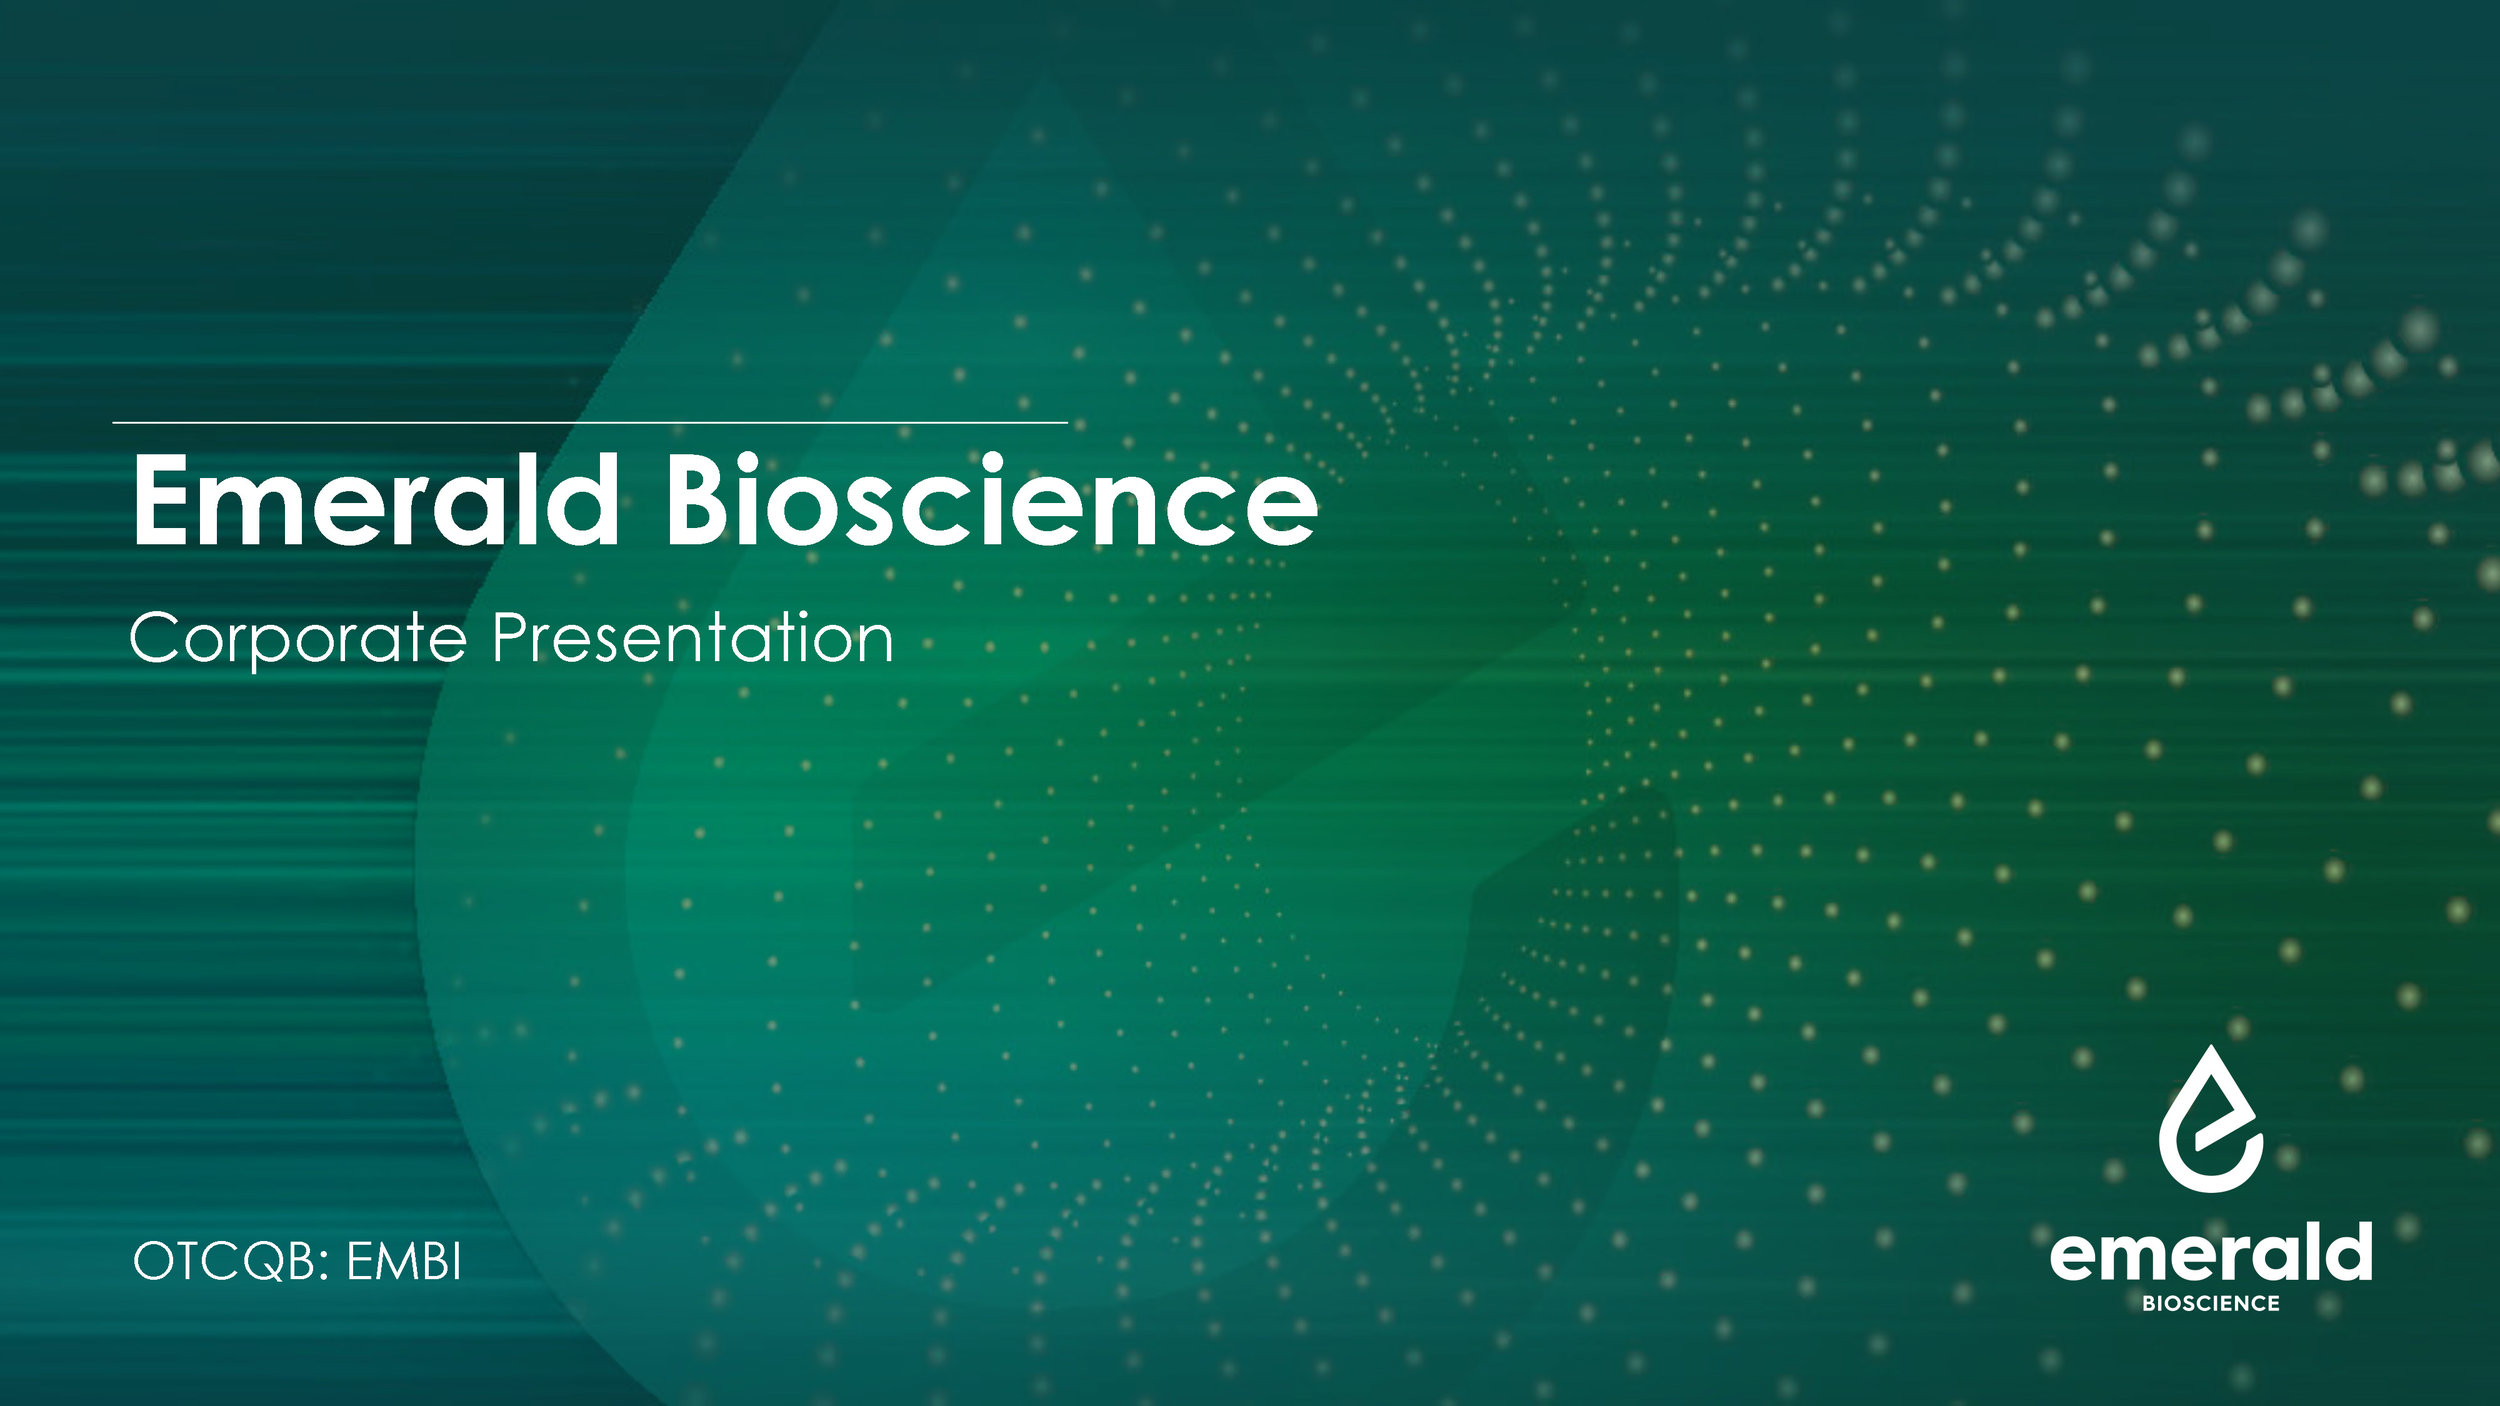 Emerald Bioscience Corporate Presentation Cover.jpg